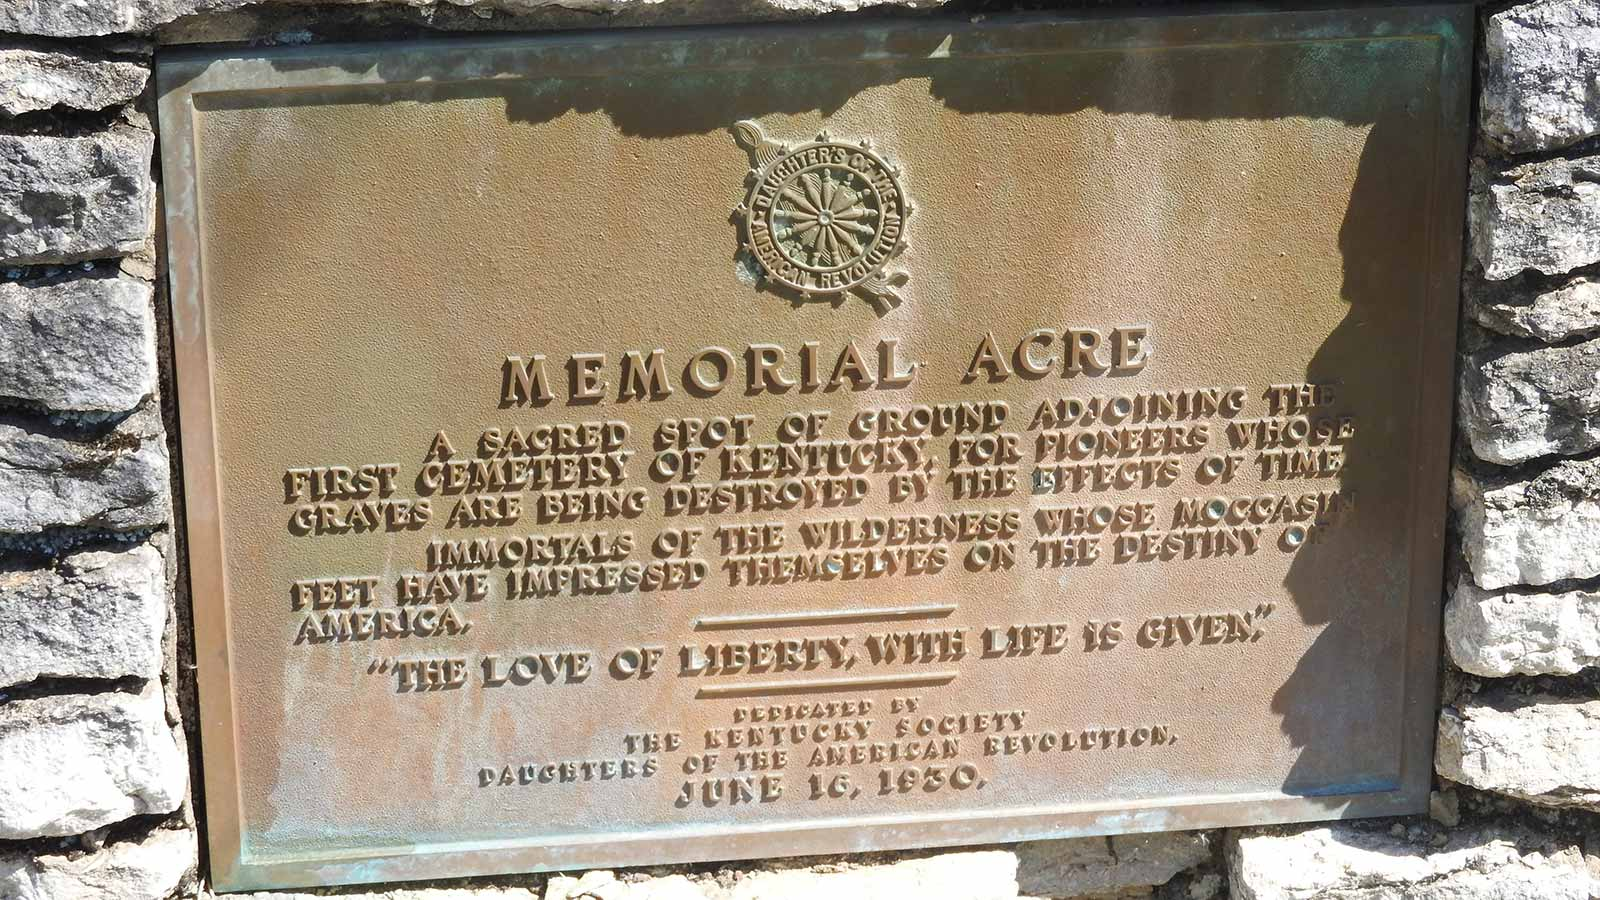 fort_harrod_kentucky_memorial_acre